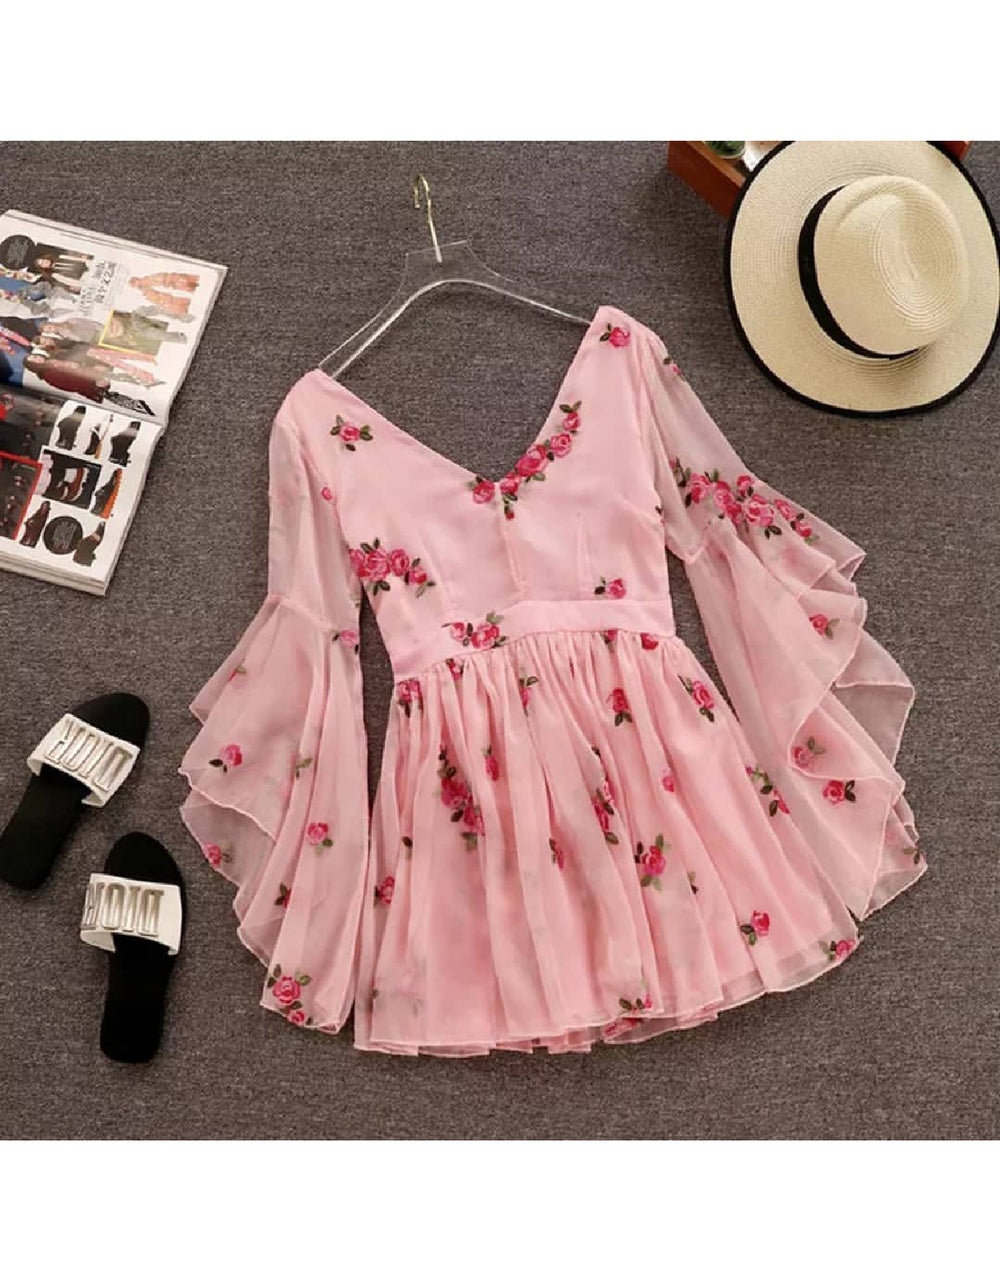 Most demanding Trending Western Dress